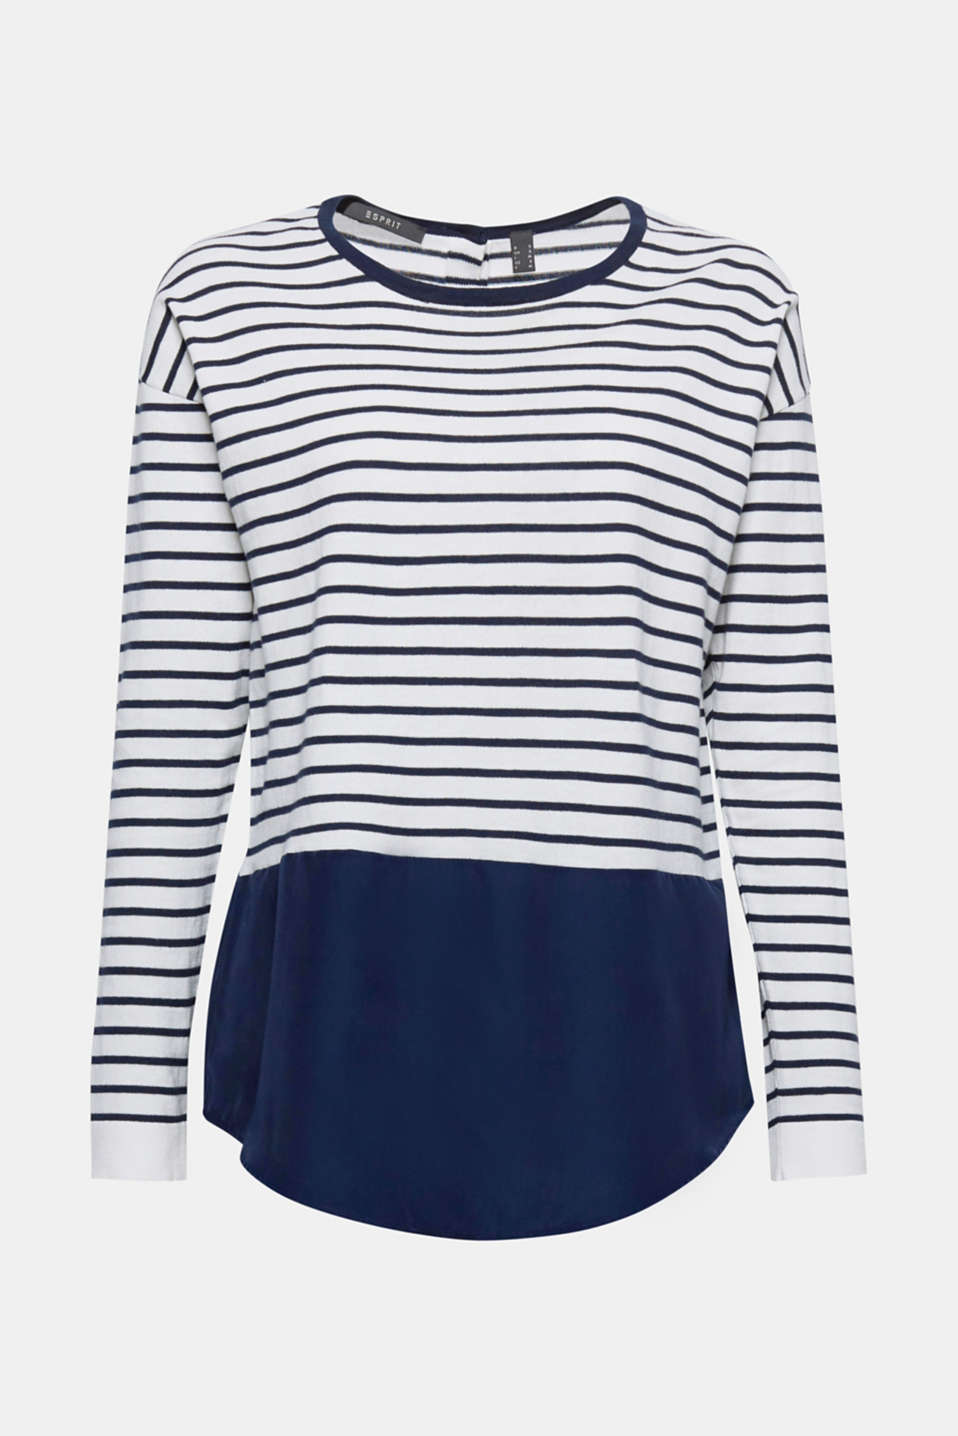 We love jumpers that offer more, just like this style in a soft, comfortable finish with a sewn-on patterned fabric hem!